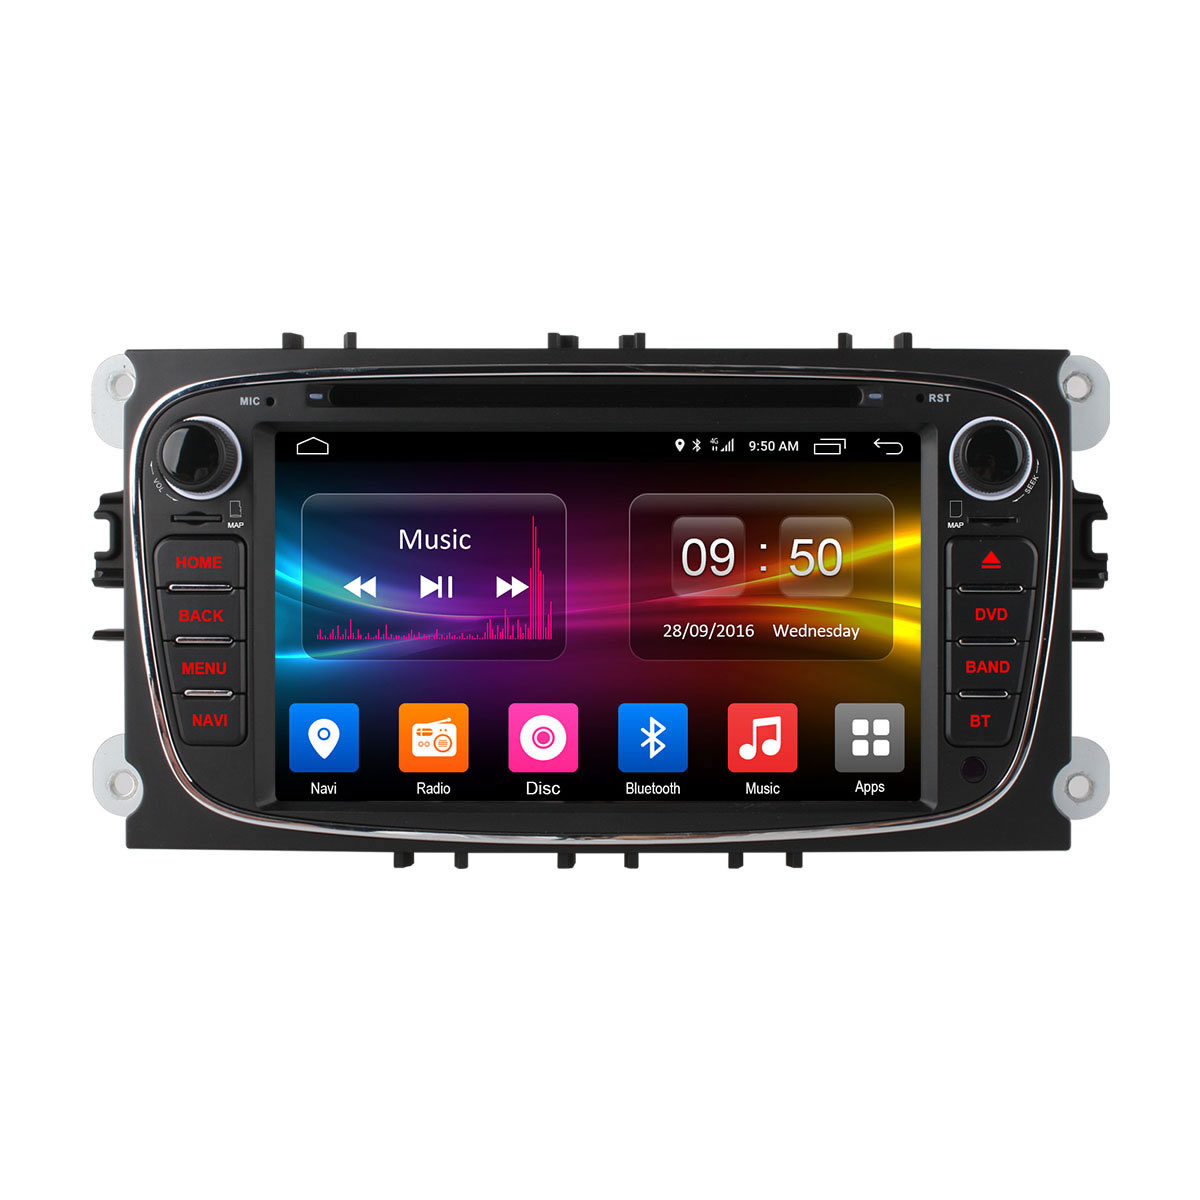 Штатная магнитола CARMEDIA OL-7202-8 (C500+) Ford Focus II, Mondeo, S-MAX, Galaxy, Tourneo/Transit Connect (цвет панели: черный) штатная магнитола carmedia daft 5695 dvd ford focus ii mondeo s max galaxy tourneo transit connect черный